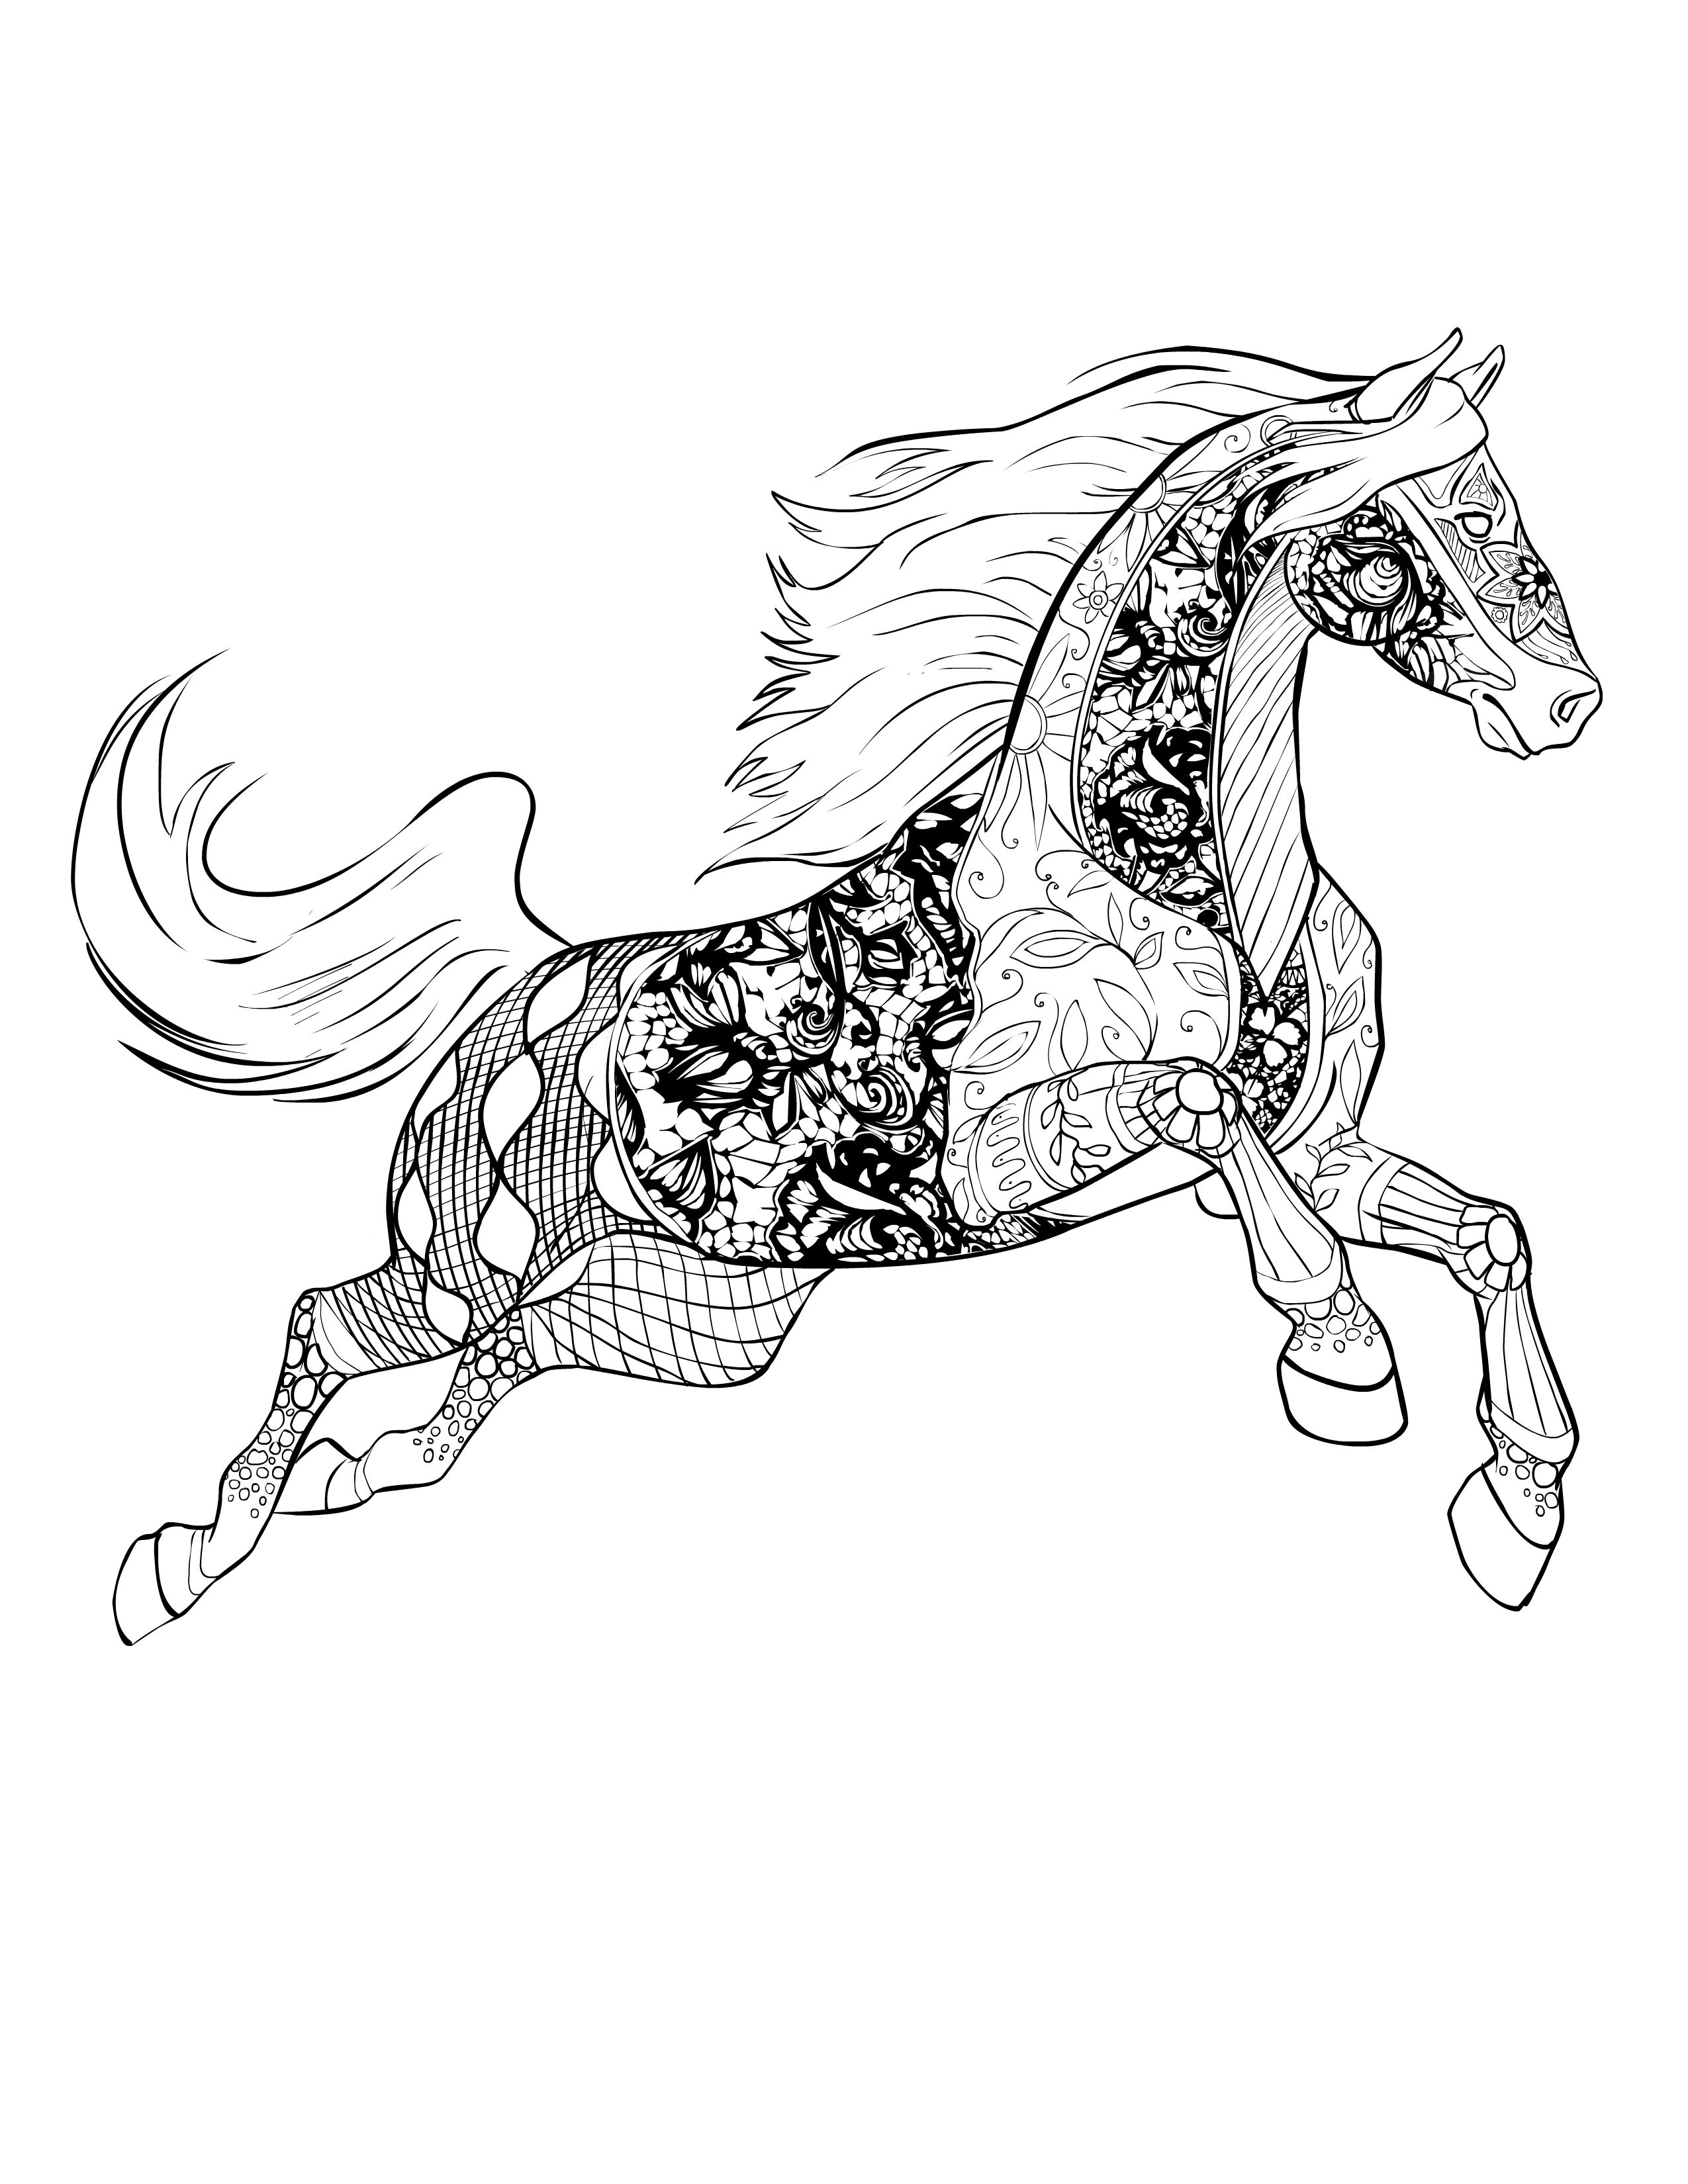 Zentangle Horse Sketch Coloring Page